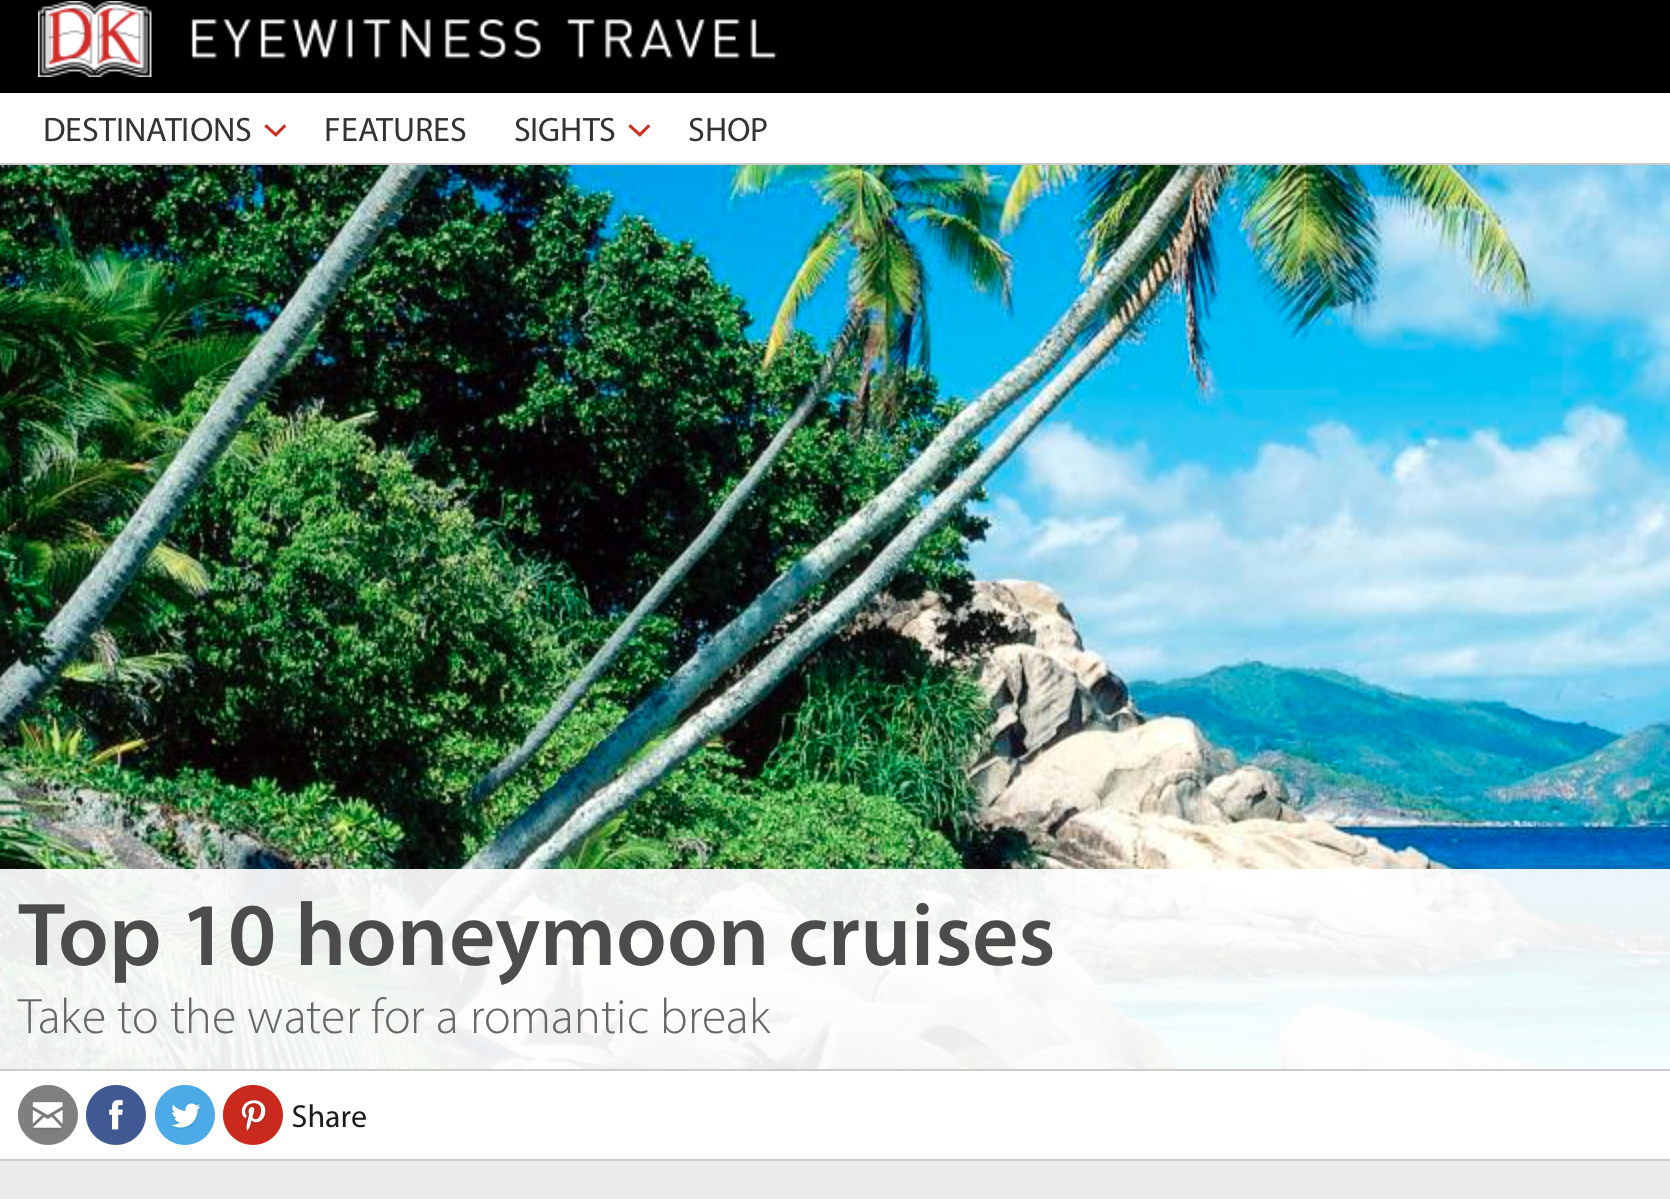 Top 10 Honeymoon Cruises